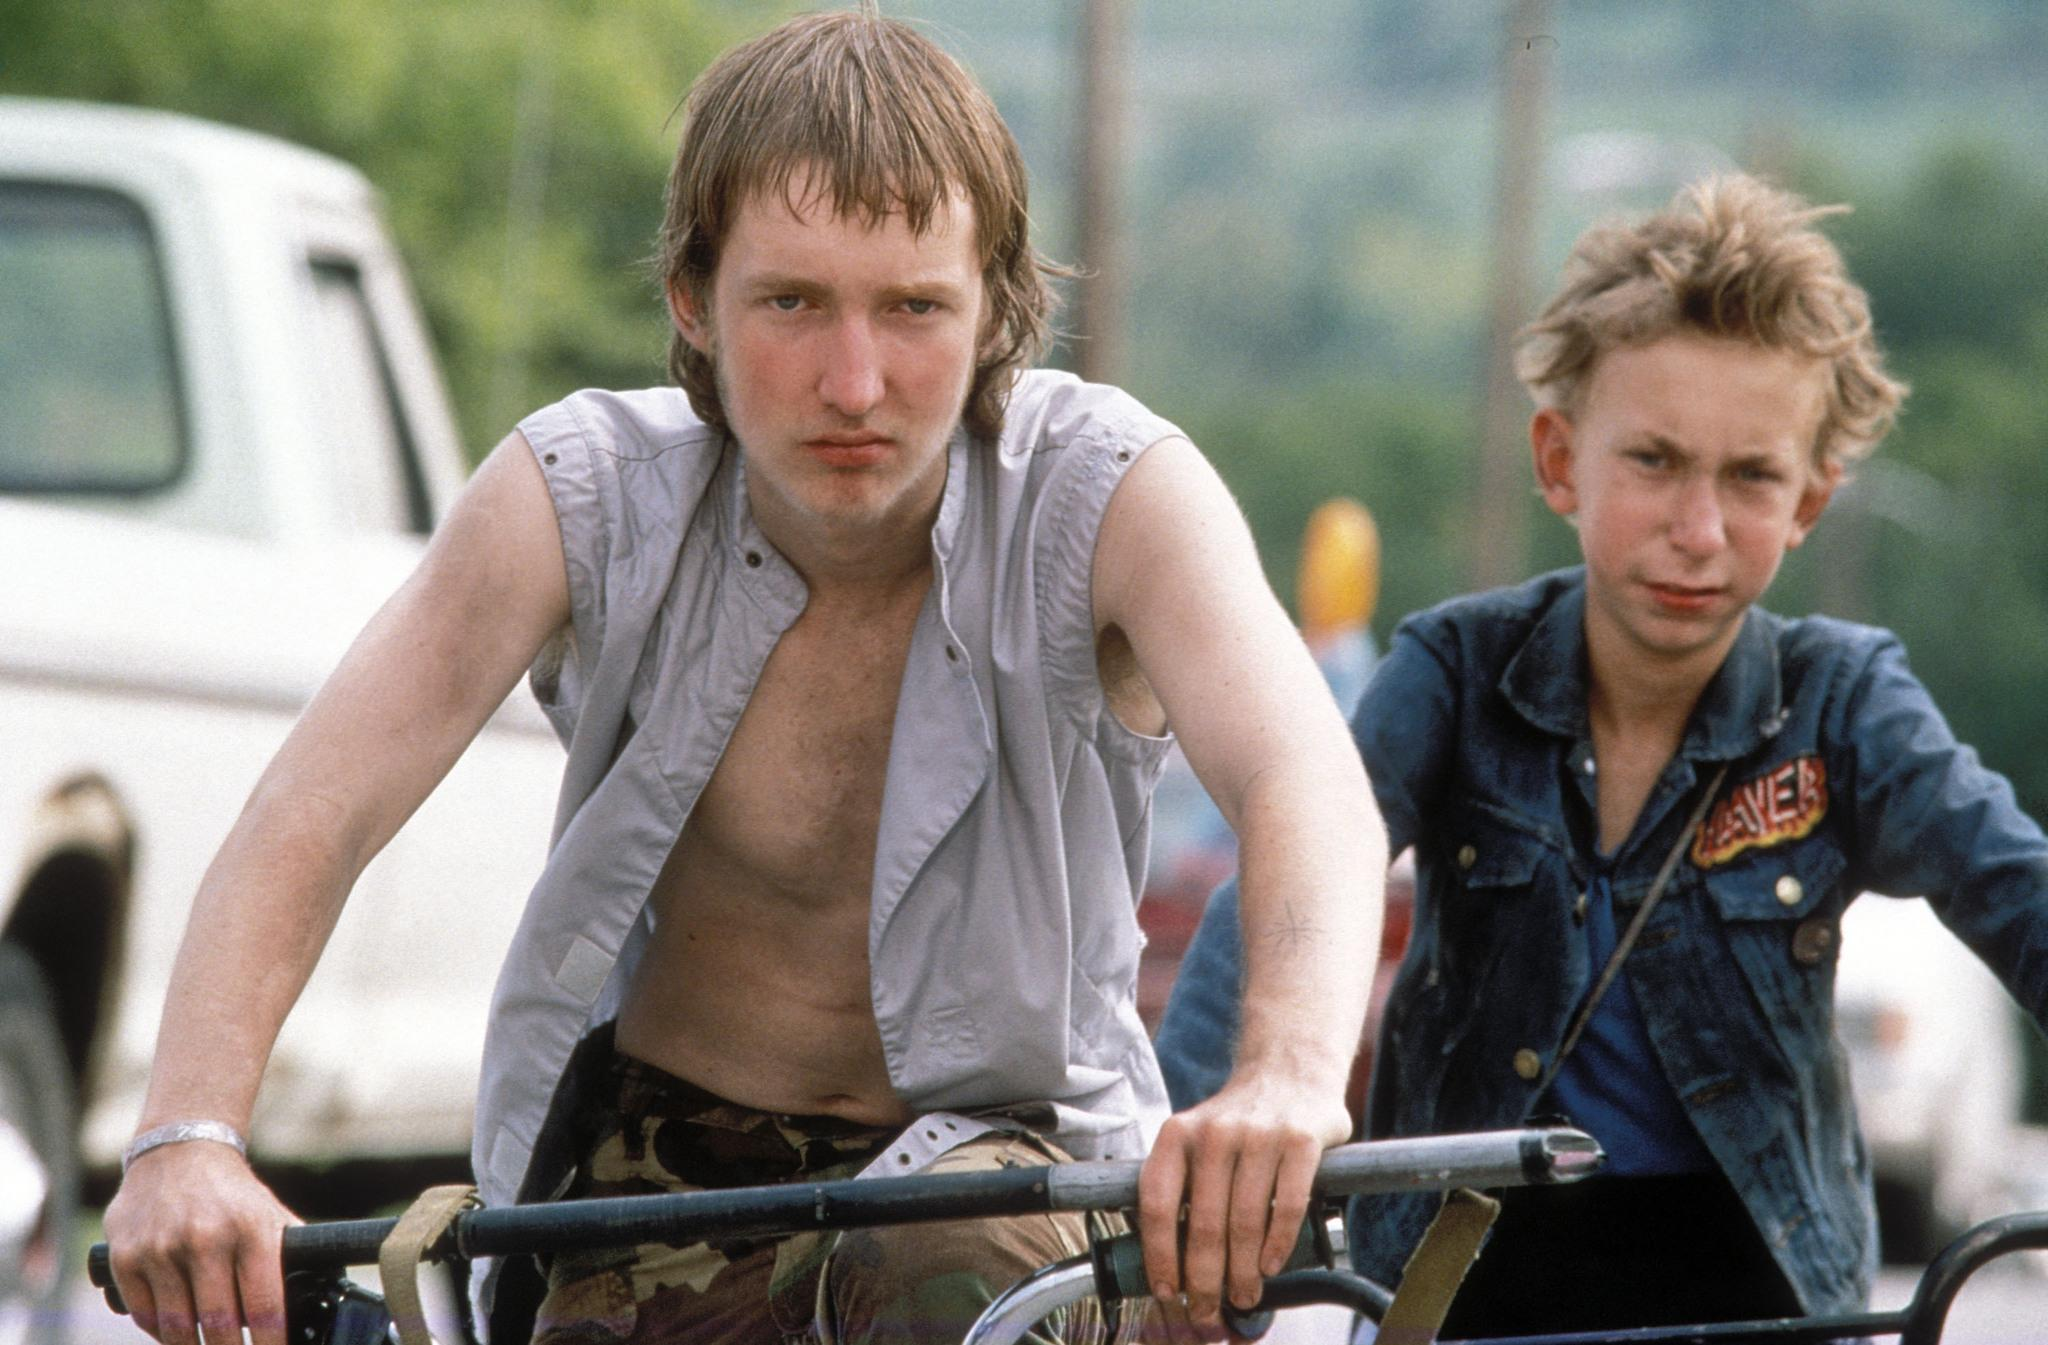 still-of-jacob-reynolds-and-nick-sutton-in-gummo-(1997)-large-picture